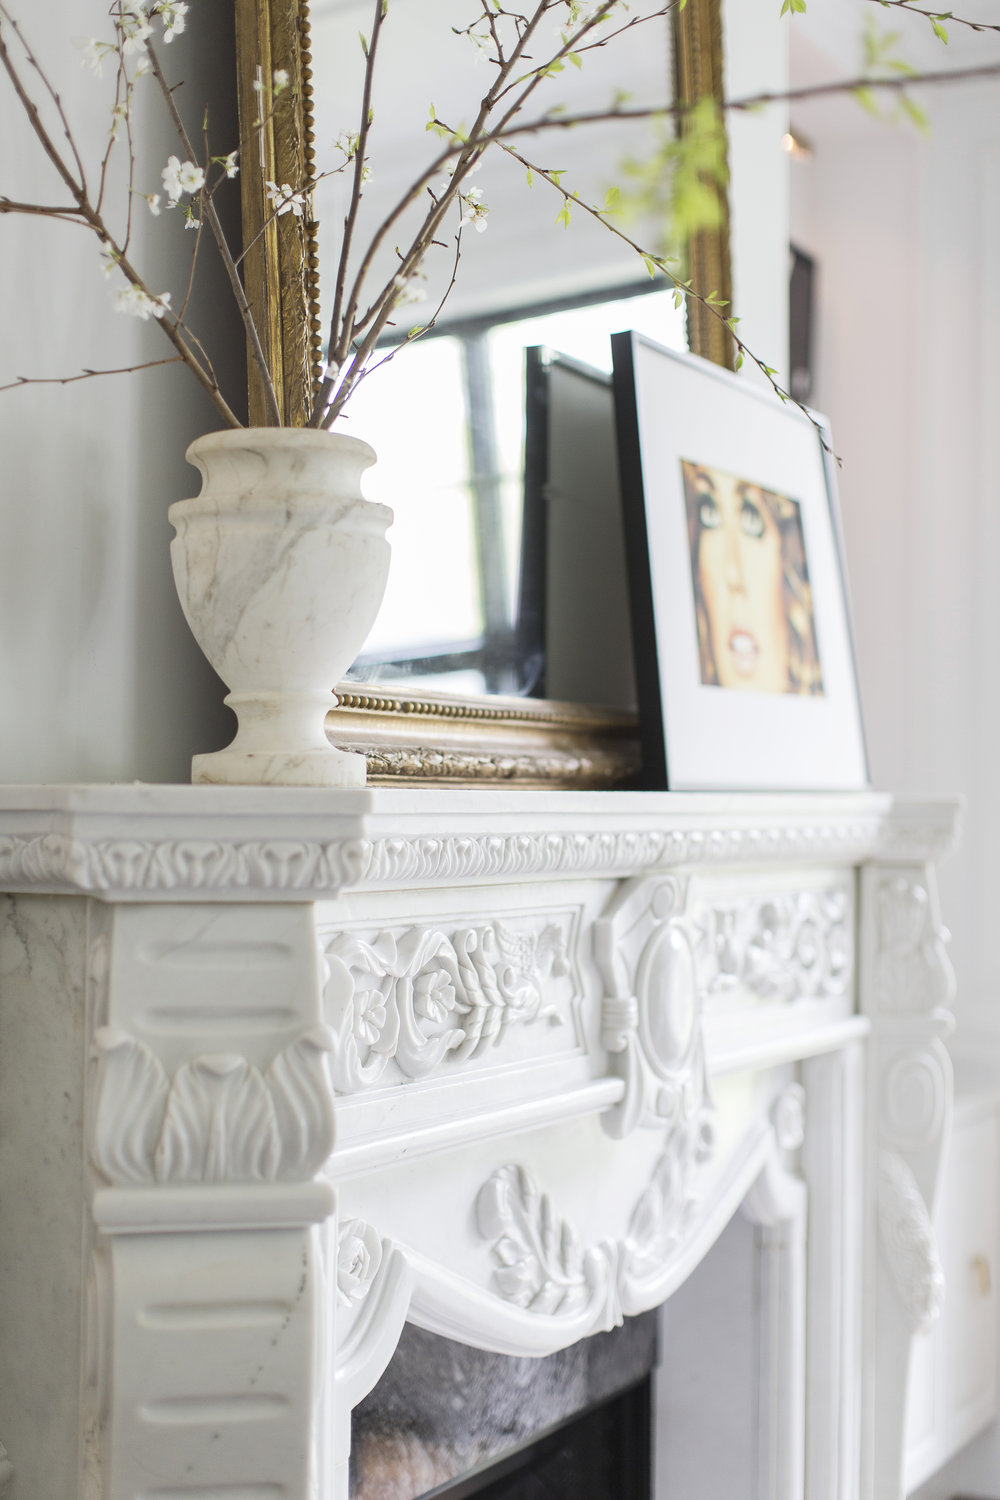 ClaytonRoad004 - mantle detail.jpg